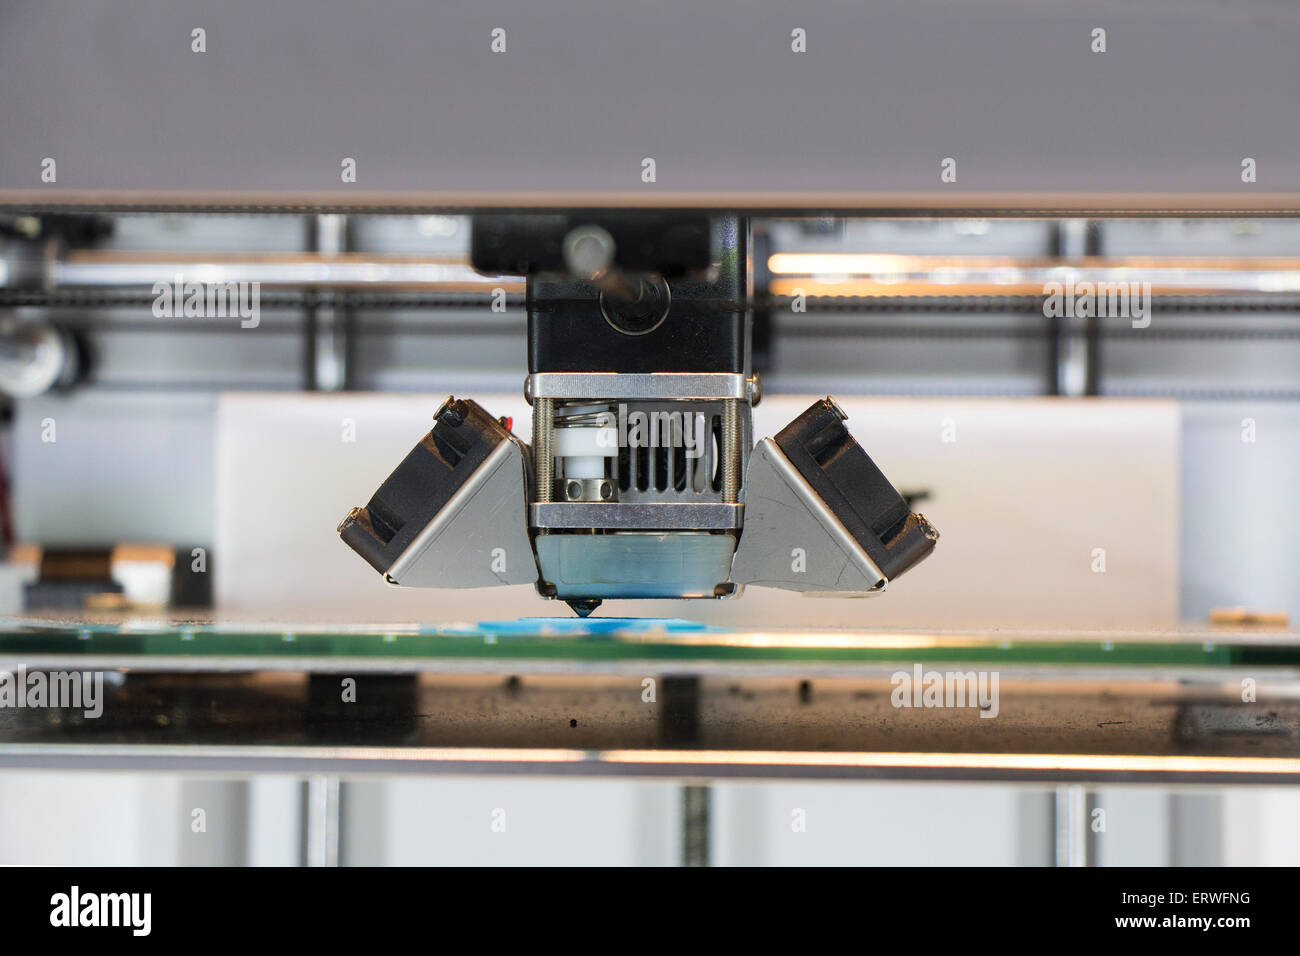 Three dimensional printer, Printing with blue Plastic Wire - Stock Image